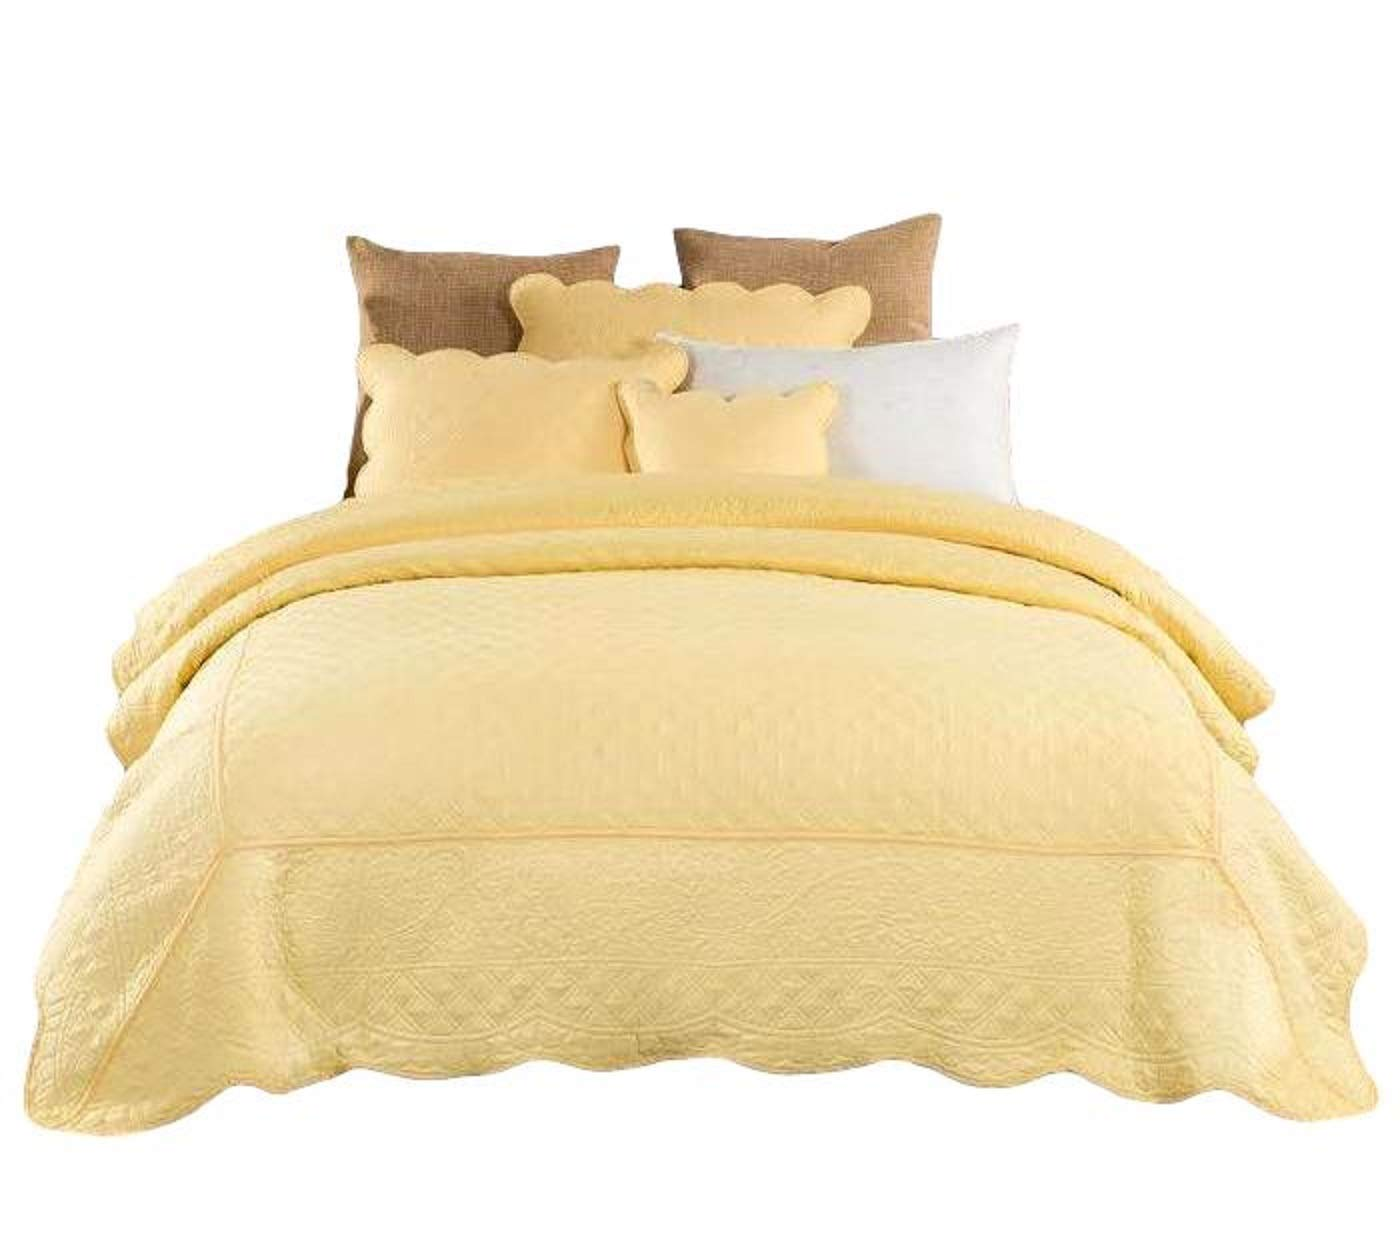 Tache 3 Pieces Solid Quilted Yellow Buttercup Puffs Matelasse Bedspread Coverlet Set, Queen